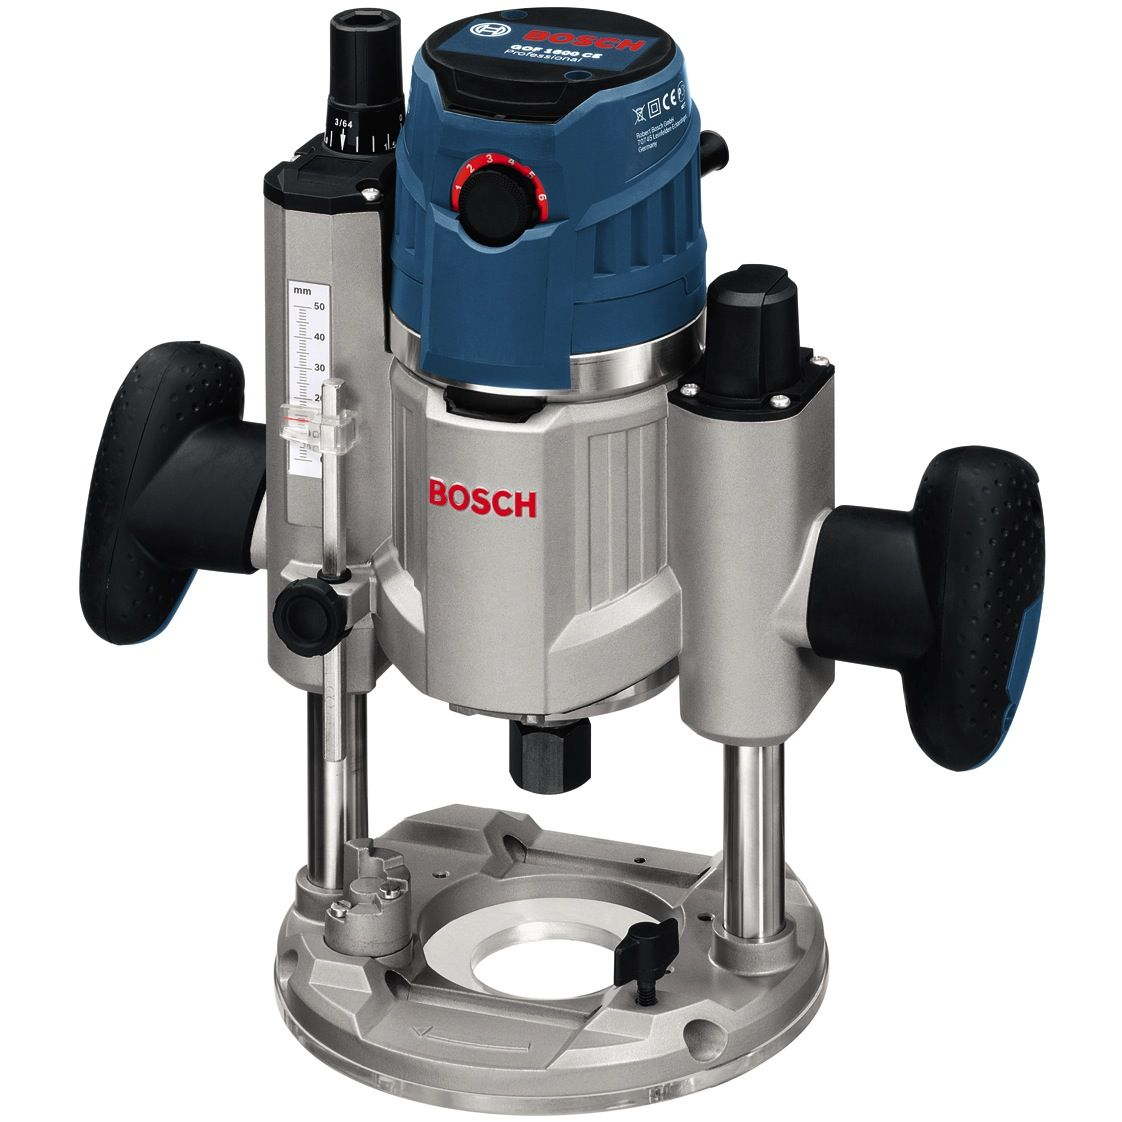 bosch variable speed router 1600w, max:25000rpm, 6kg gof1600ce